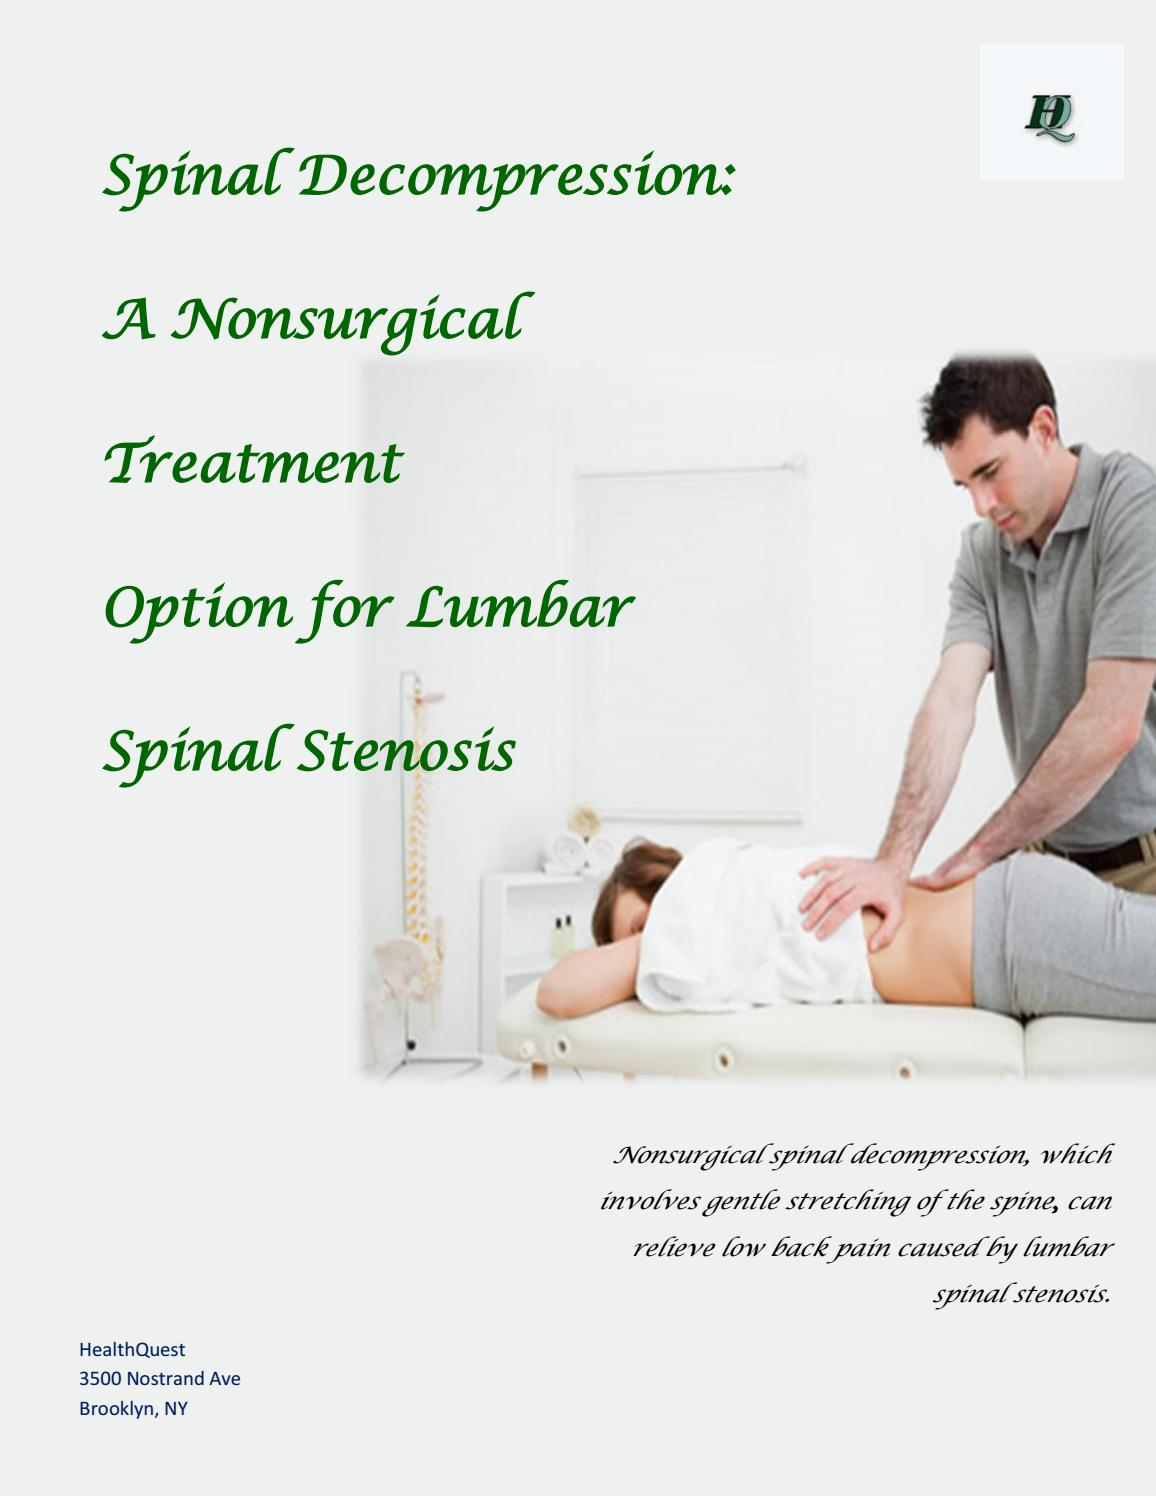 Spinal Decompression: A Nonsurgical Treatment Option for